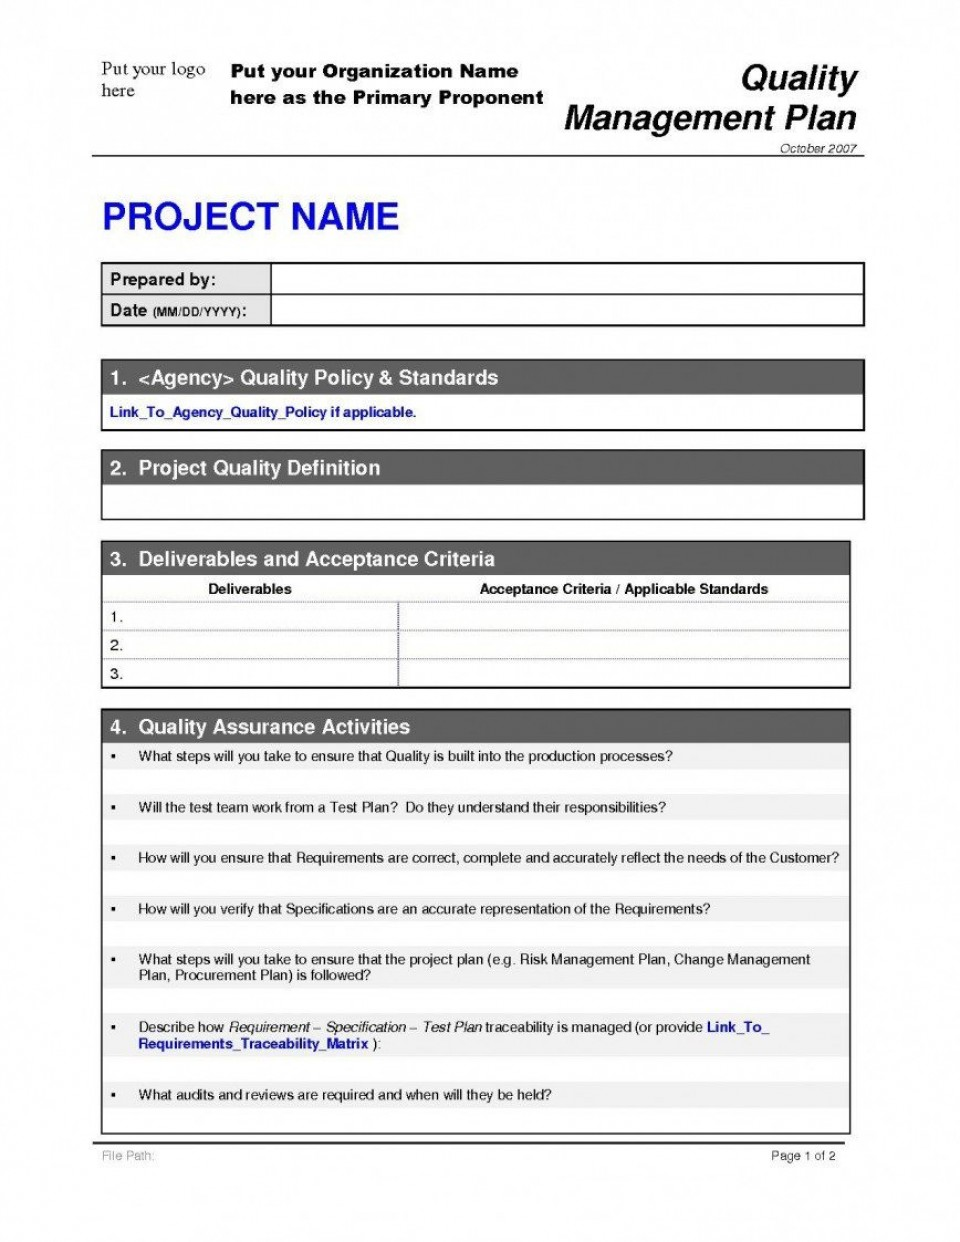 008 Striking Project Management Plan Template Pmi Picture  Quality960